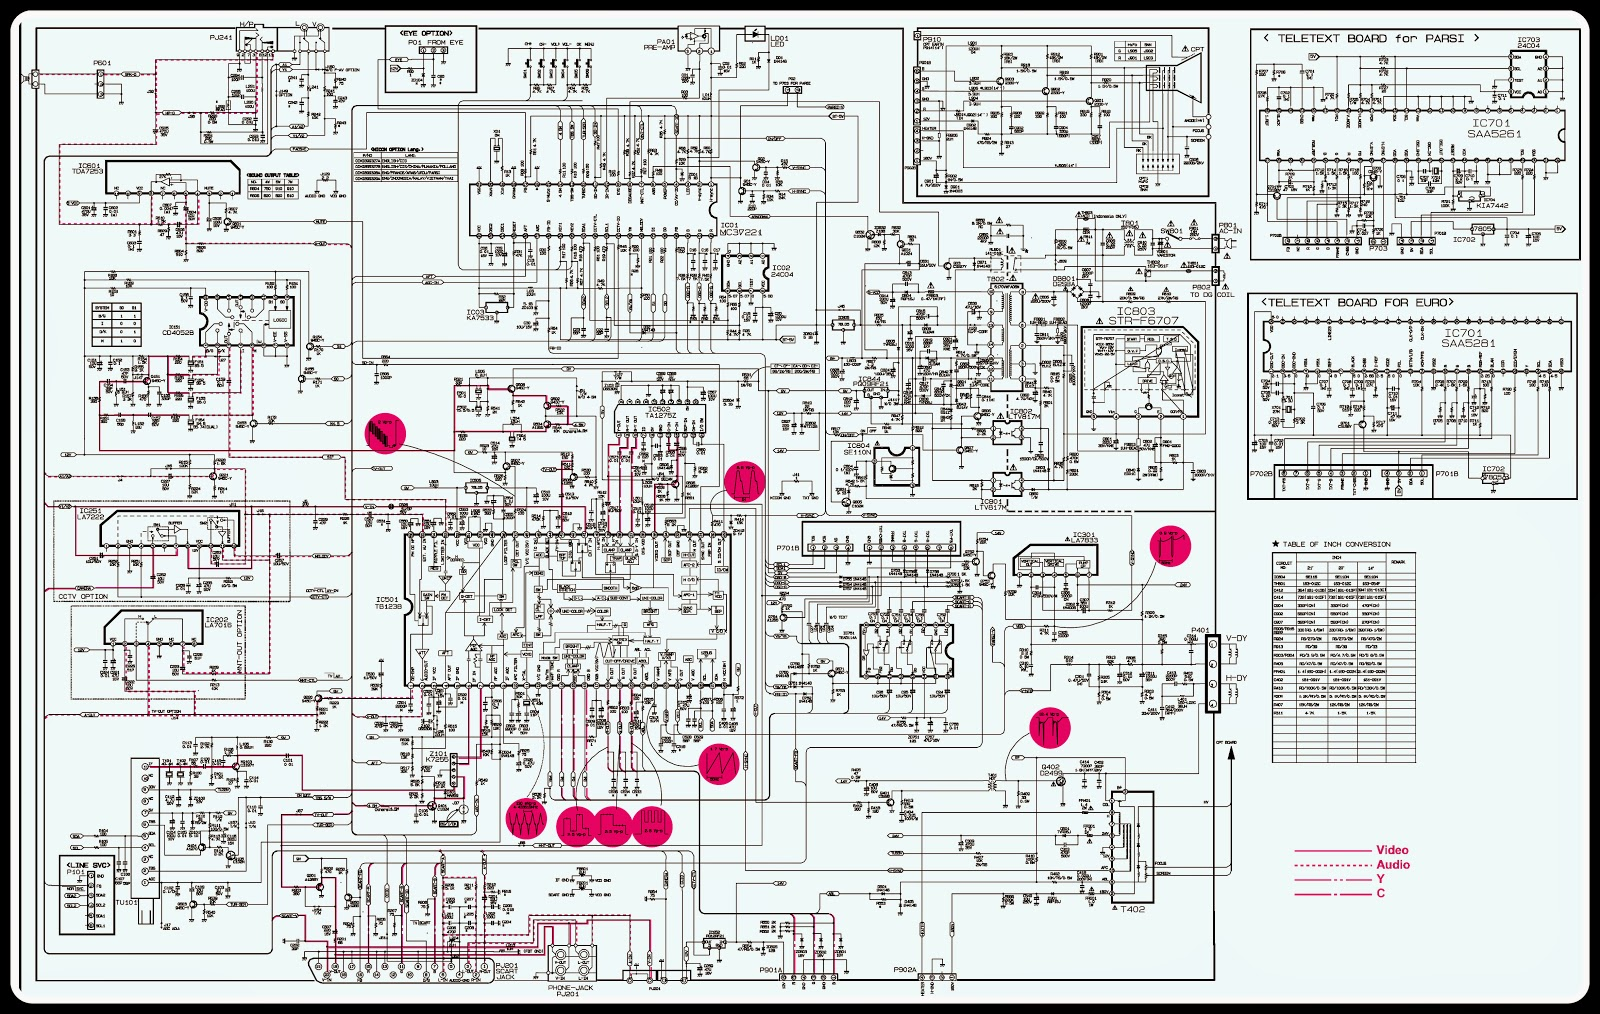 lg cf20f schematic circuit diagram 20 inch crt tv electro help samsung tv diagram crt tv power diagram [ 1600 x 1014 Pixel ]